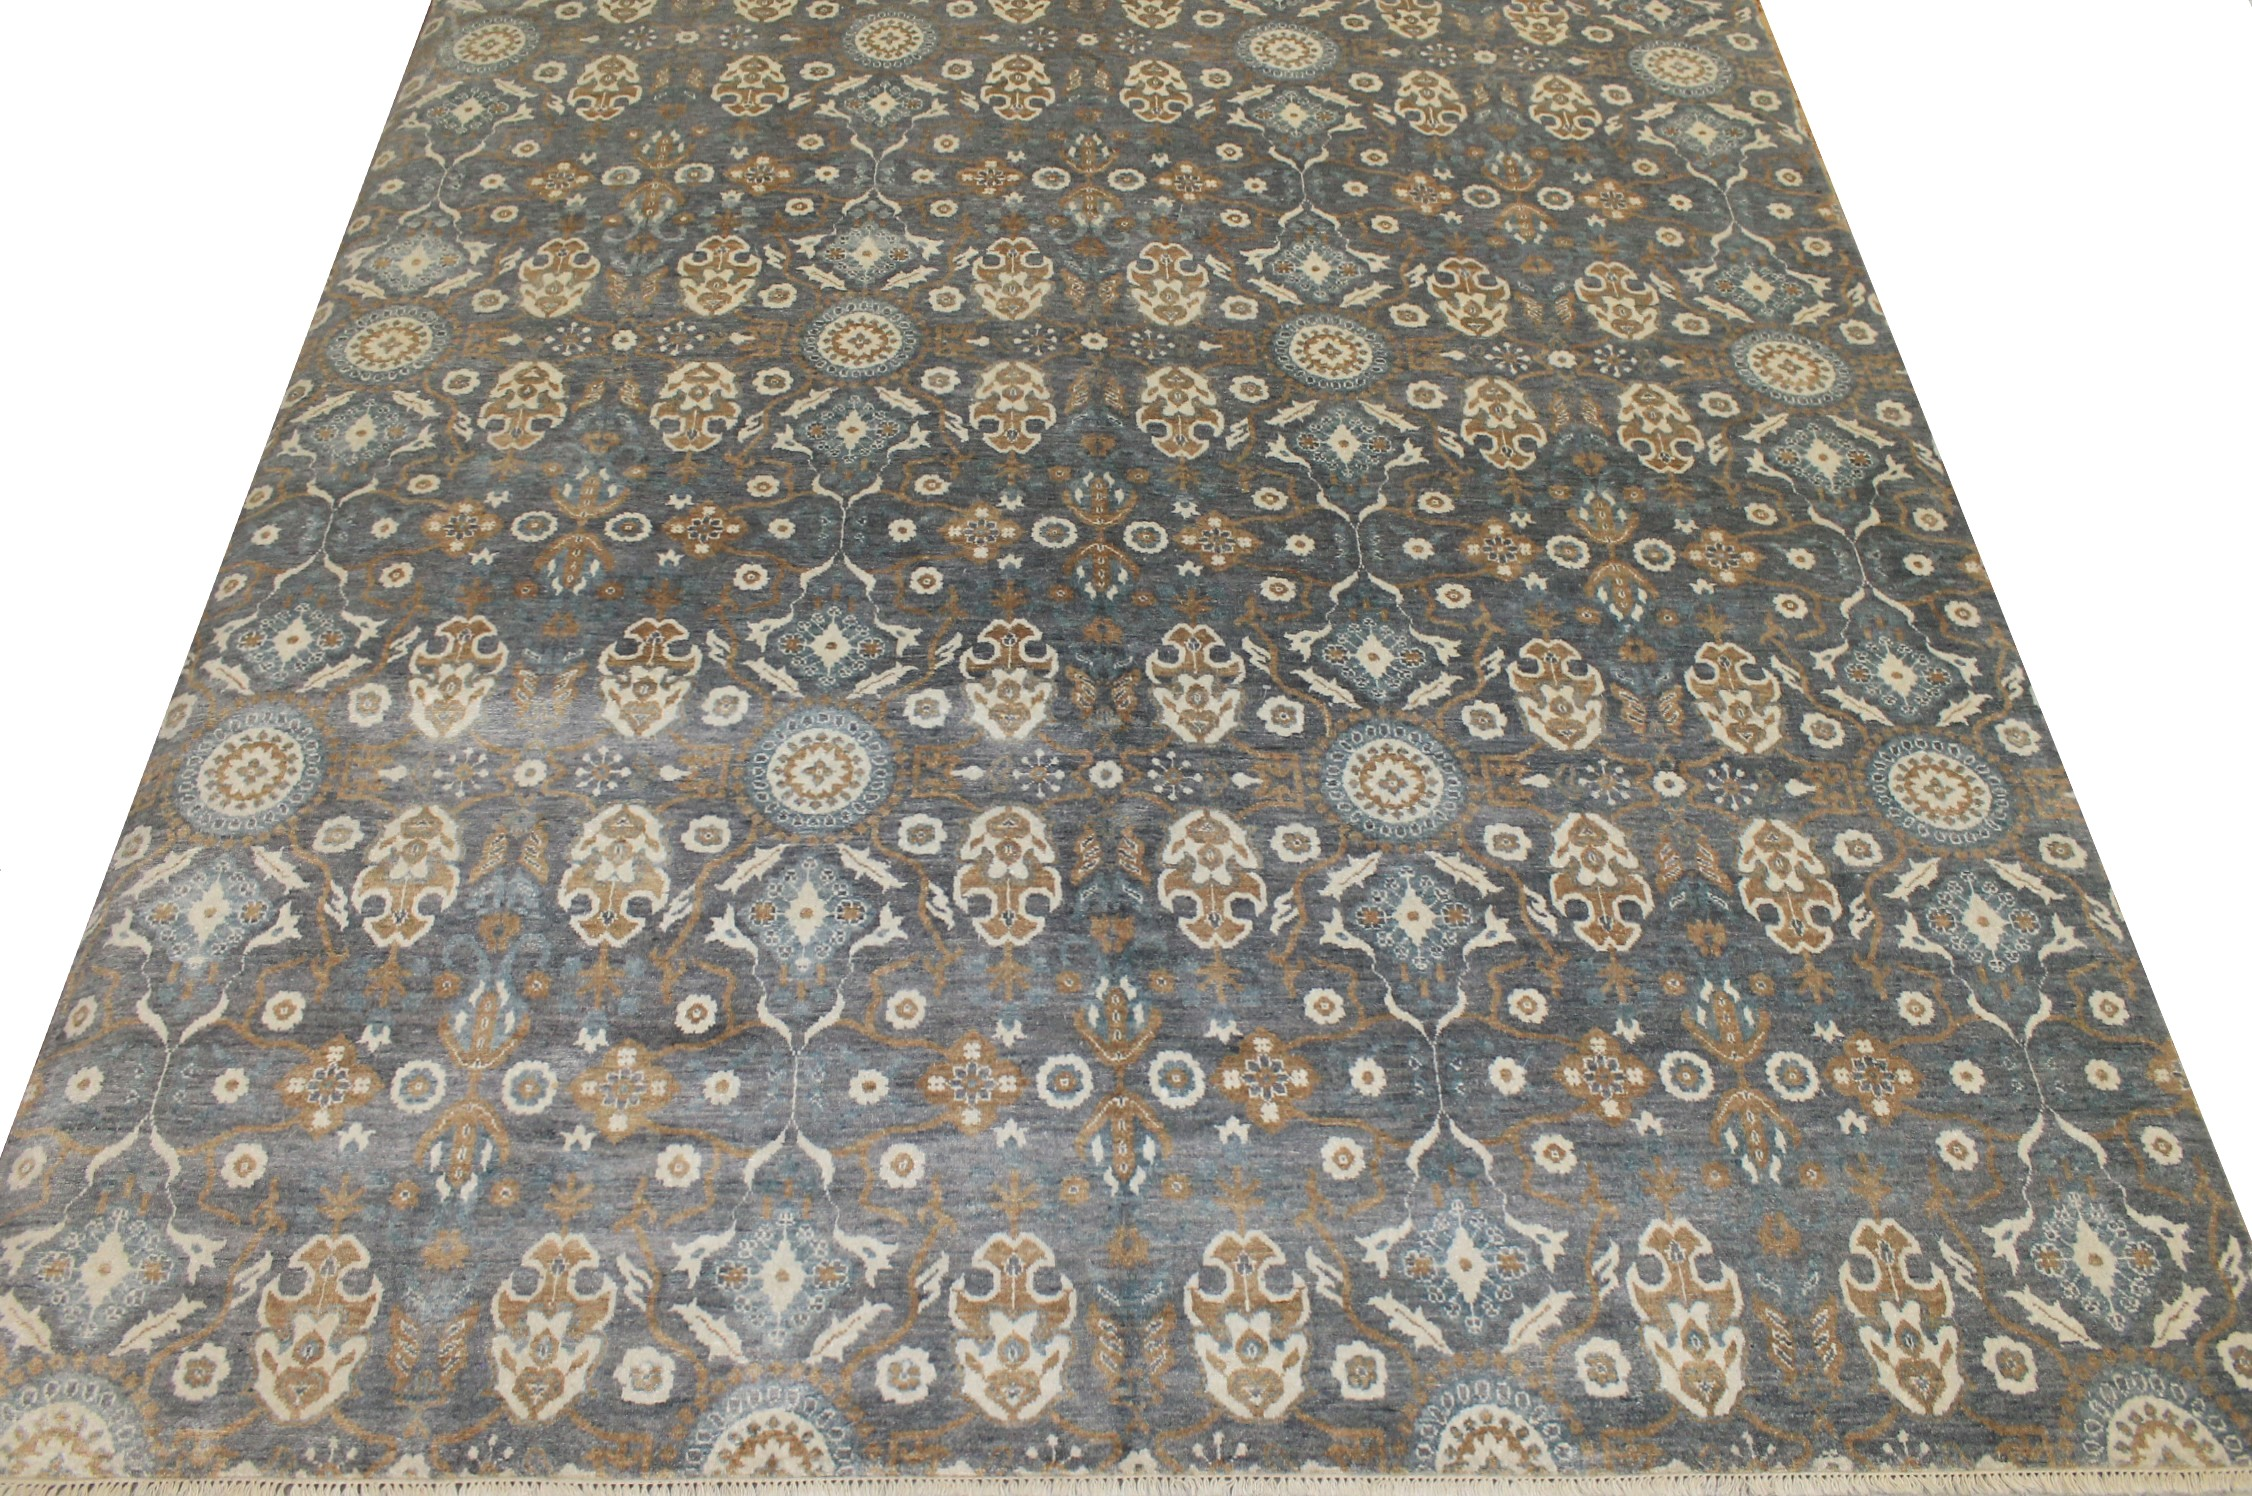 8x10 Contemporary Hand Knotted Wool Area Rug - MR17651